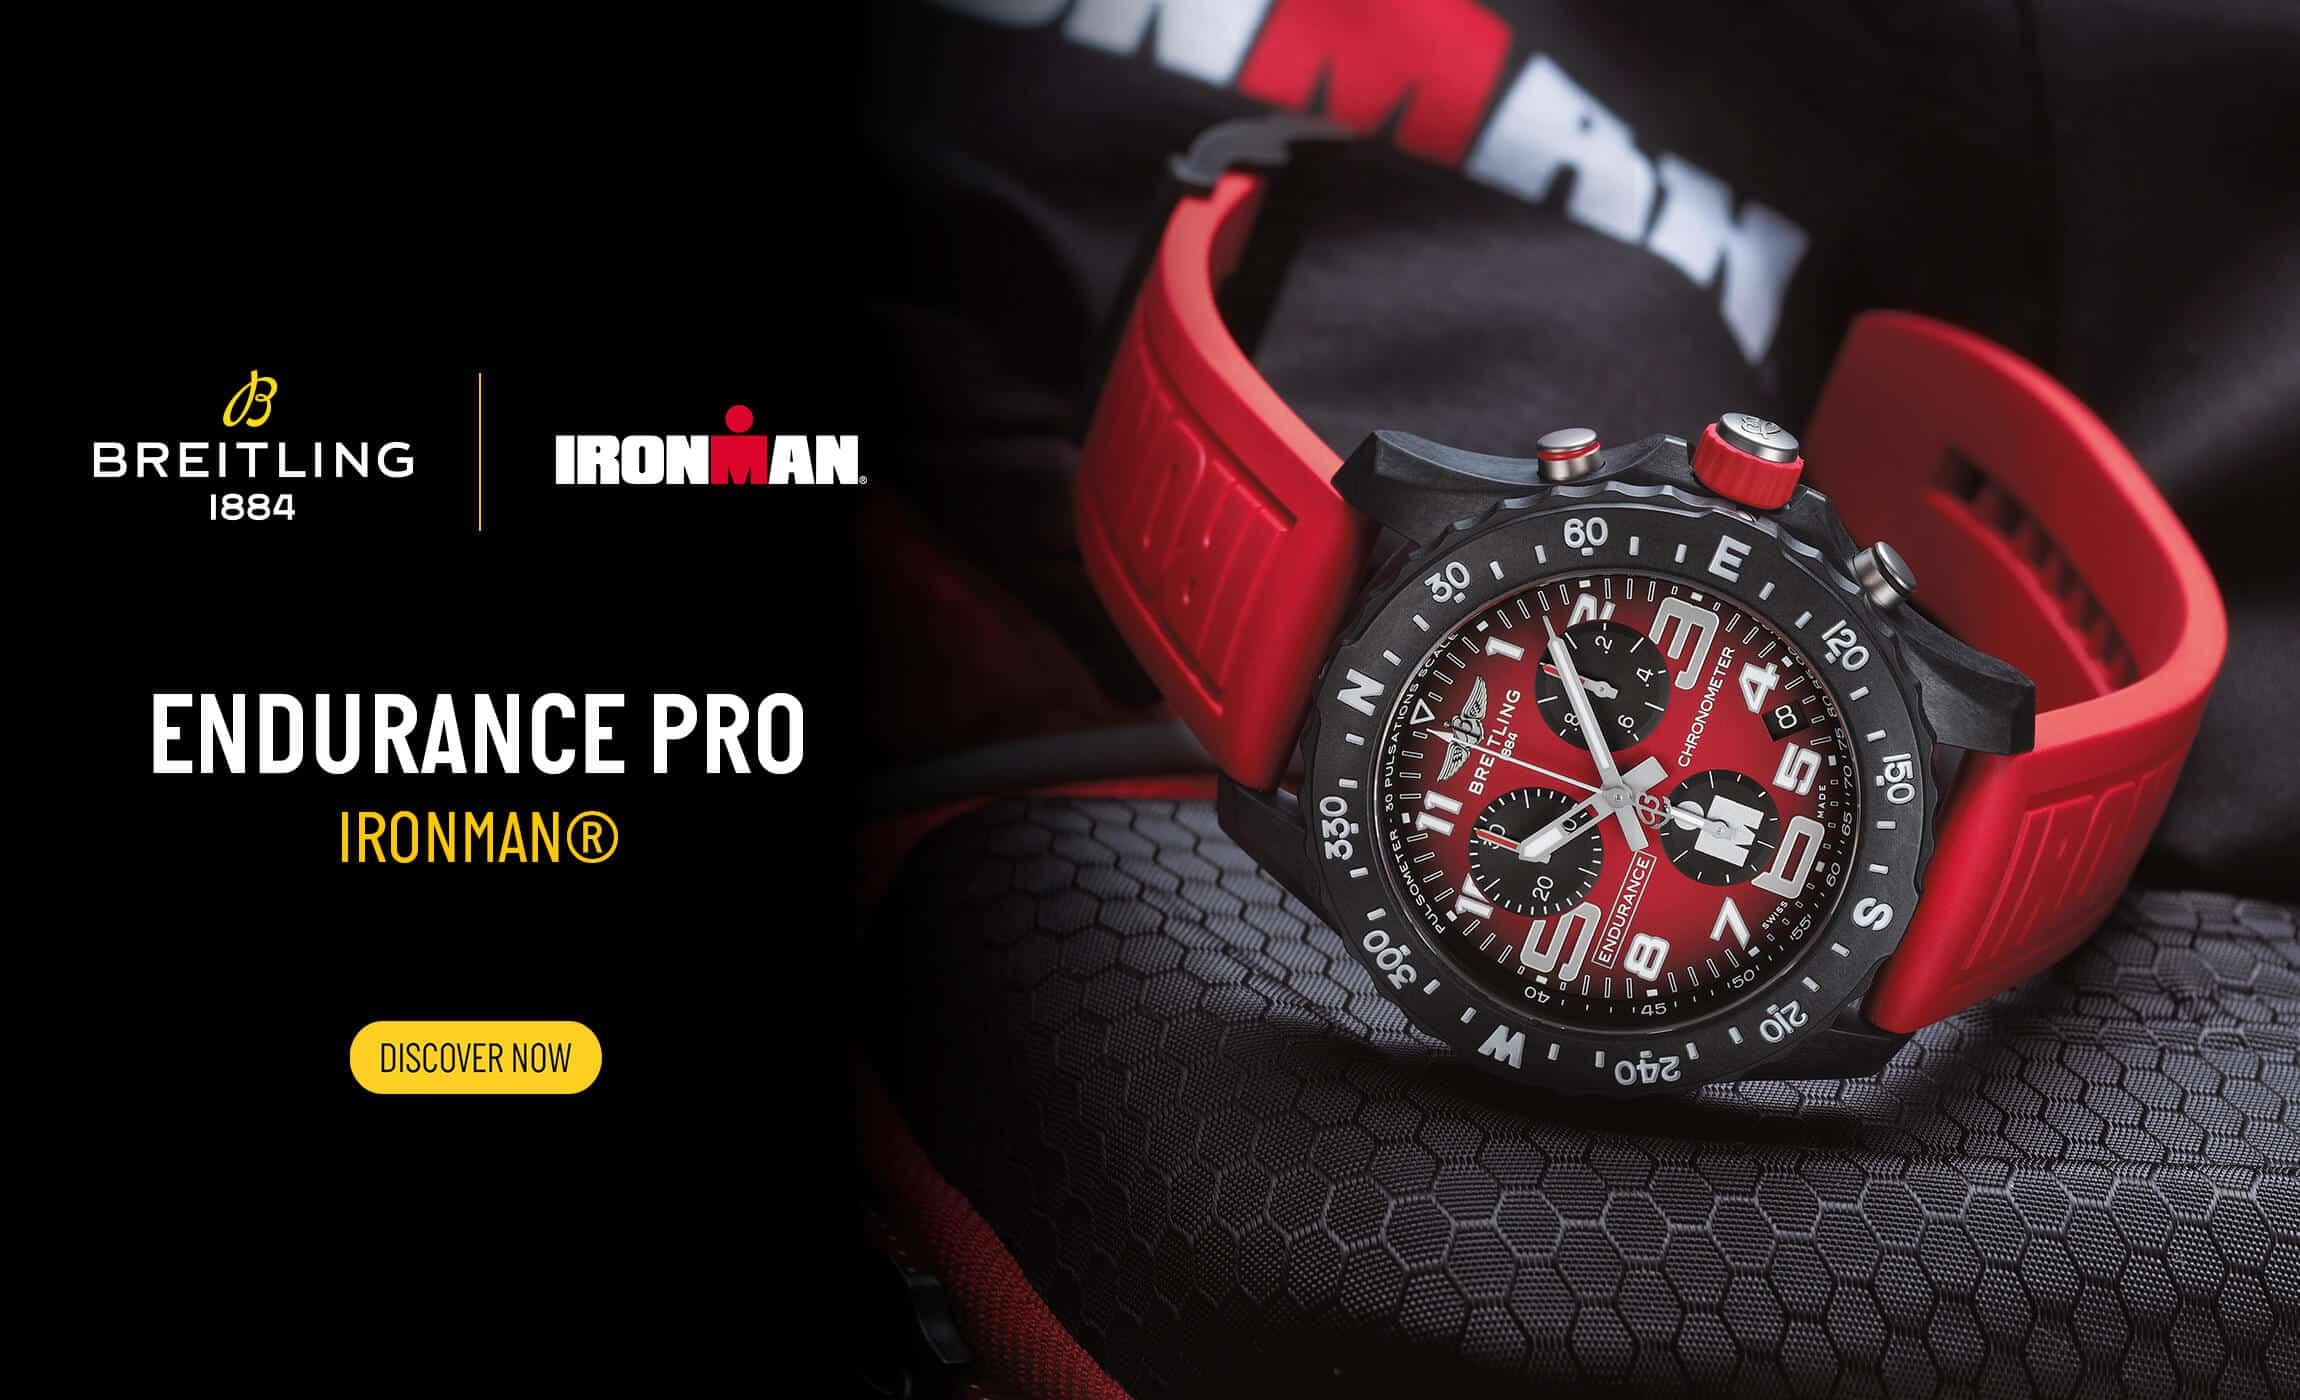 Breitling Endurance Pro IRONMAN SuperQuartz Chronograph Breitlight Red Dial & Red Rubber Strap 44mm Terence Lett